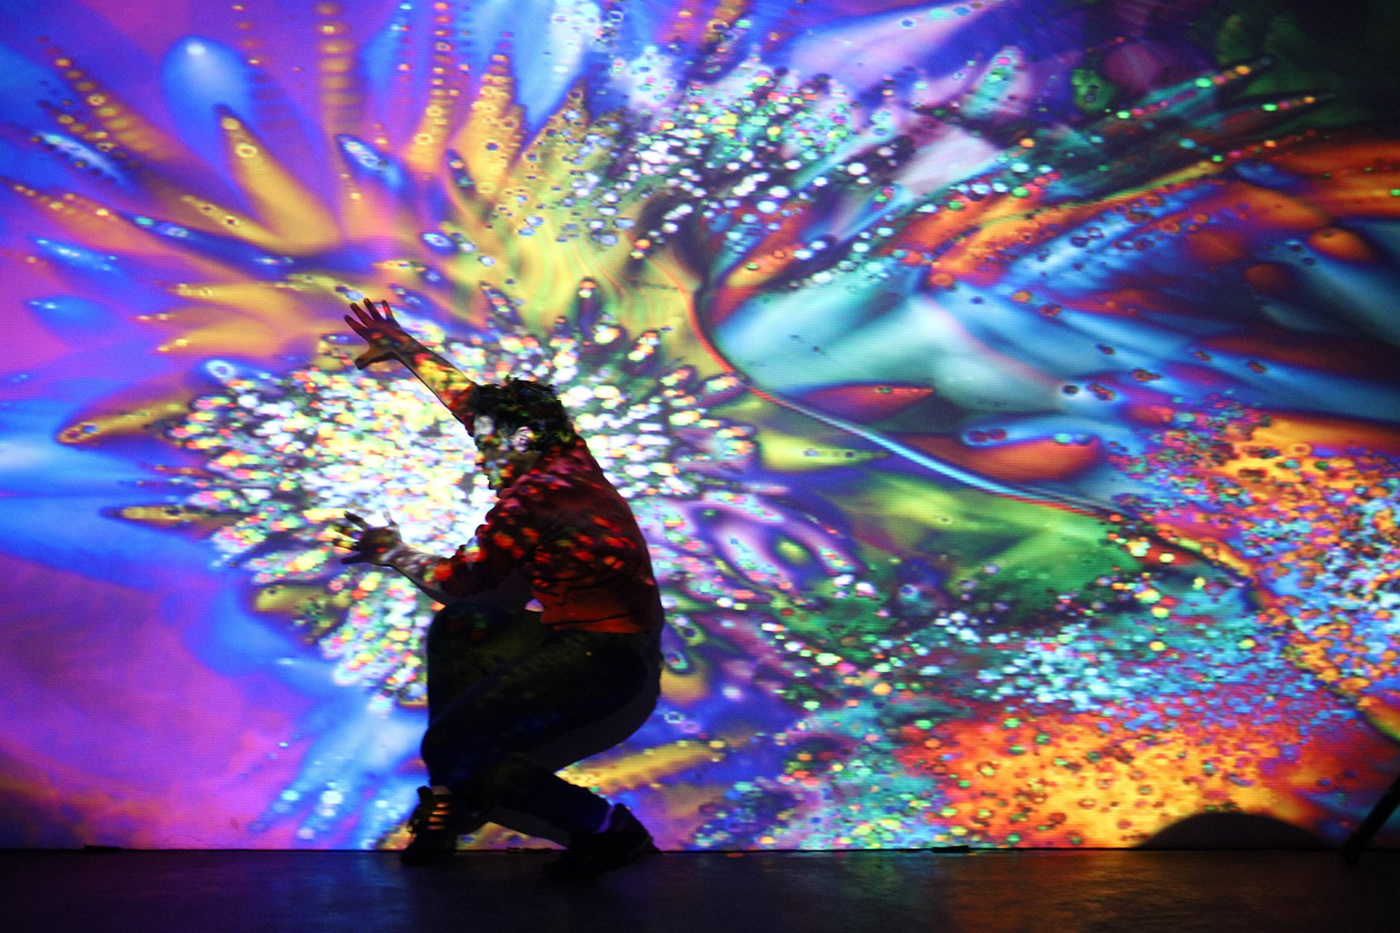 interactive art, live performance, digital art, abstract art, generative art, Maotik, Performer